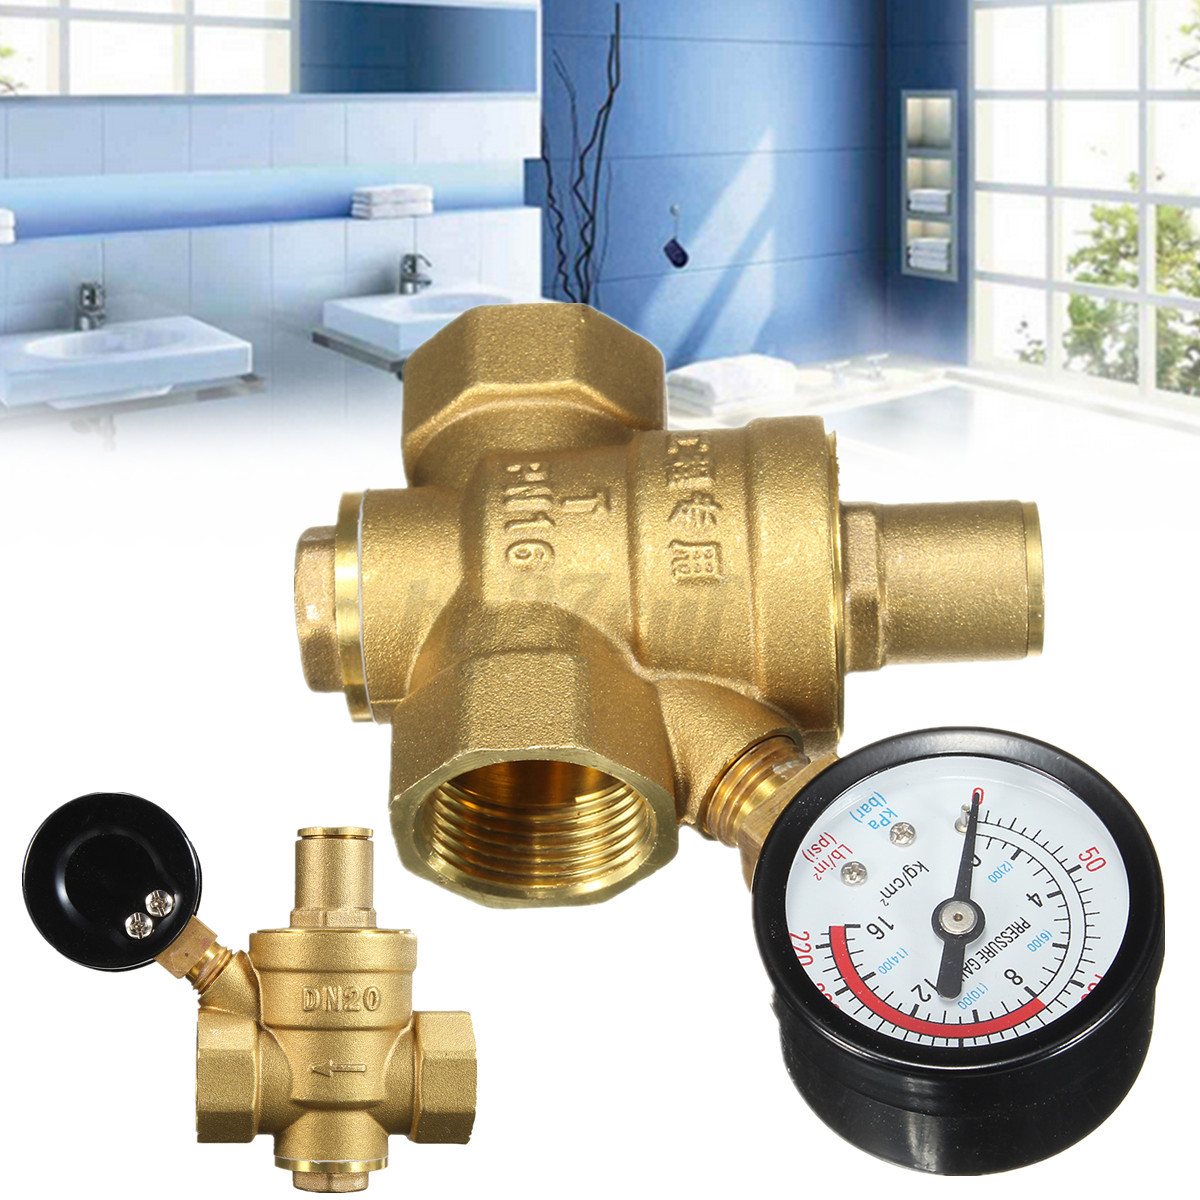 dn20 3 4 39 39 brass water valve pressure reducer gauge meter adjustable regulator ebay. Black Bedroom Furniture Sets. Home Design Ideas